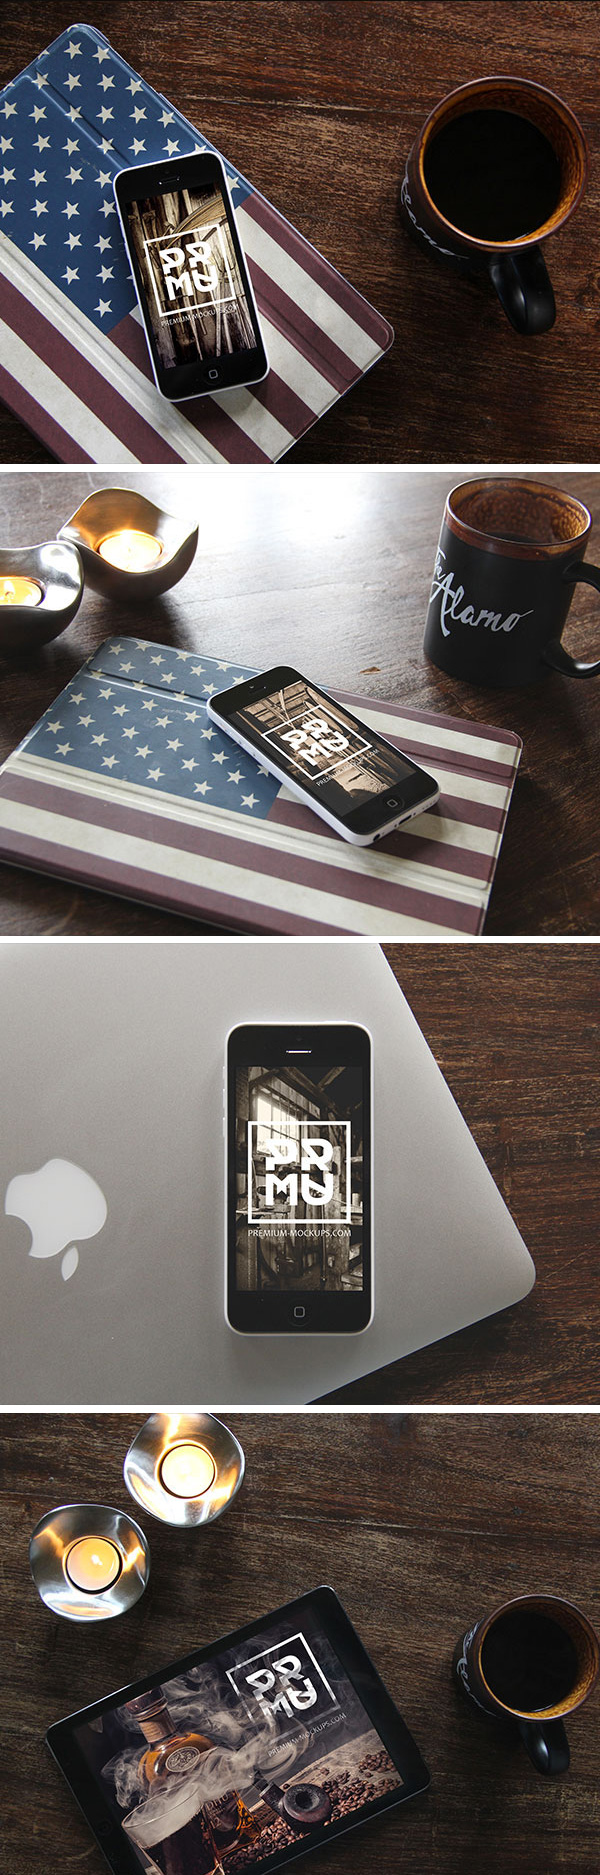 iPhone & iPad Photo MockUps